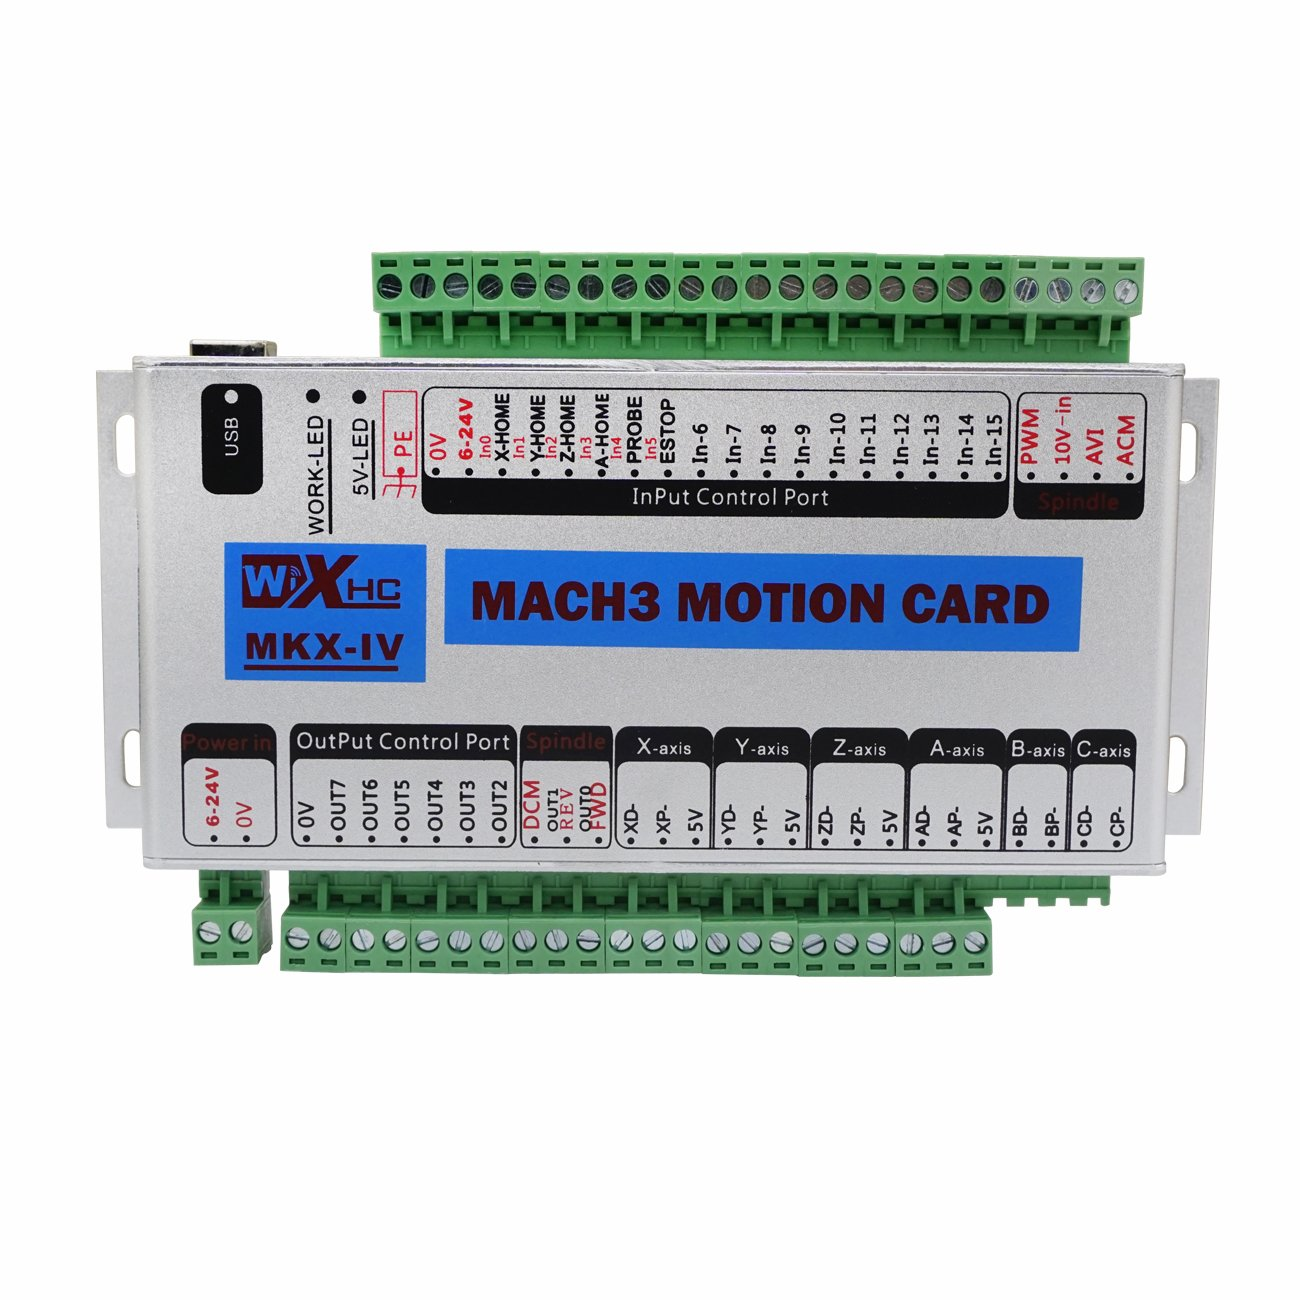 FISTERS Mach3 USB 4 Axis CNC Motion Control Card Breakout Board 400KHz Support Windows 7 by Fisters